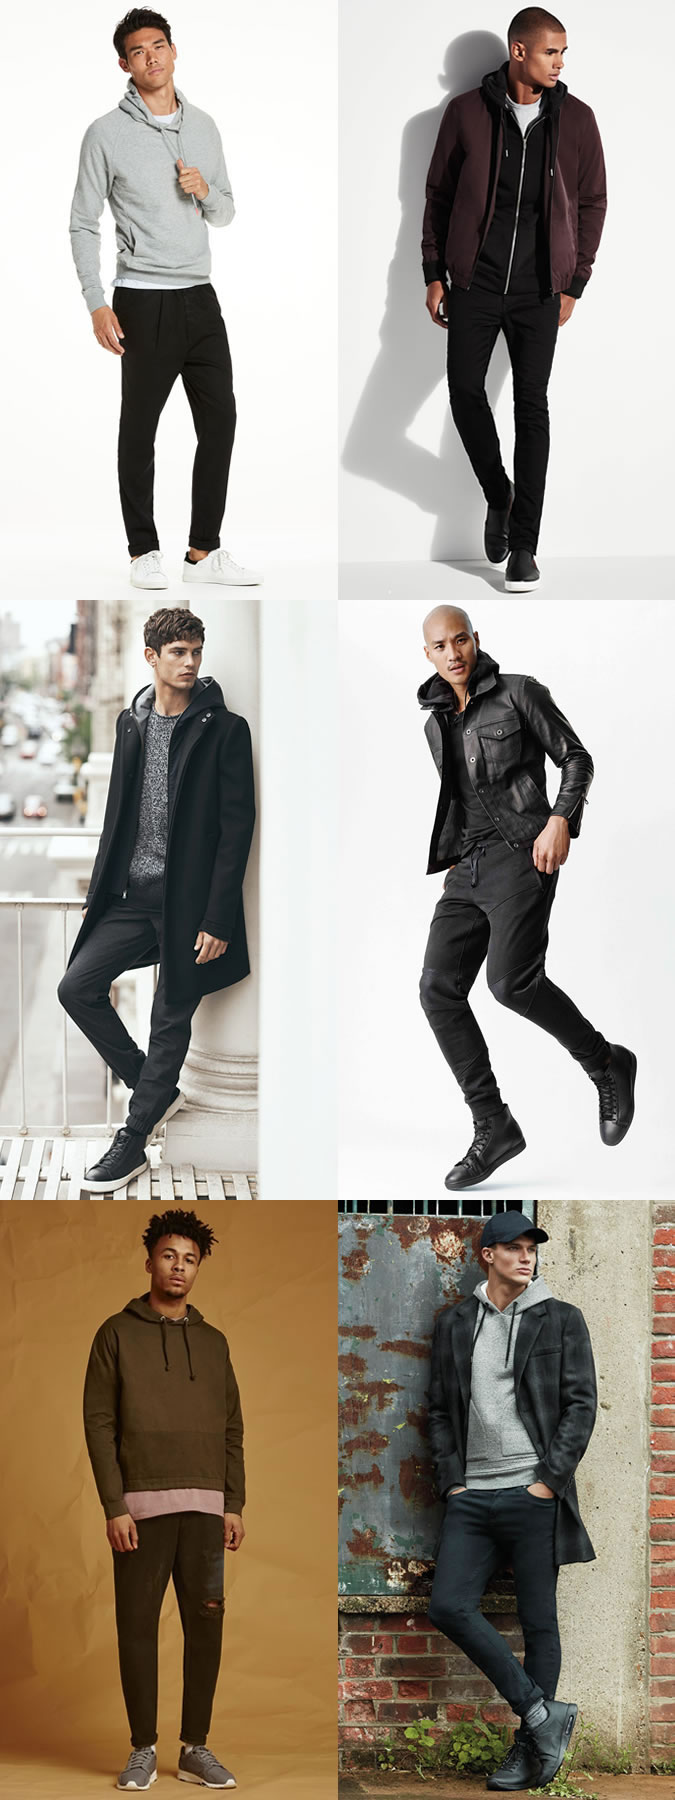 Men's Athleisure Hoodies Outfit Inspiration Lookbook